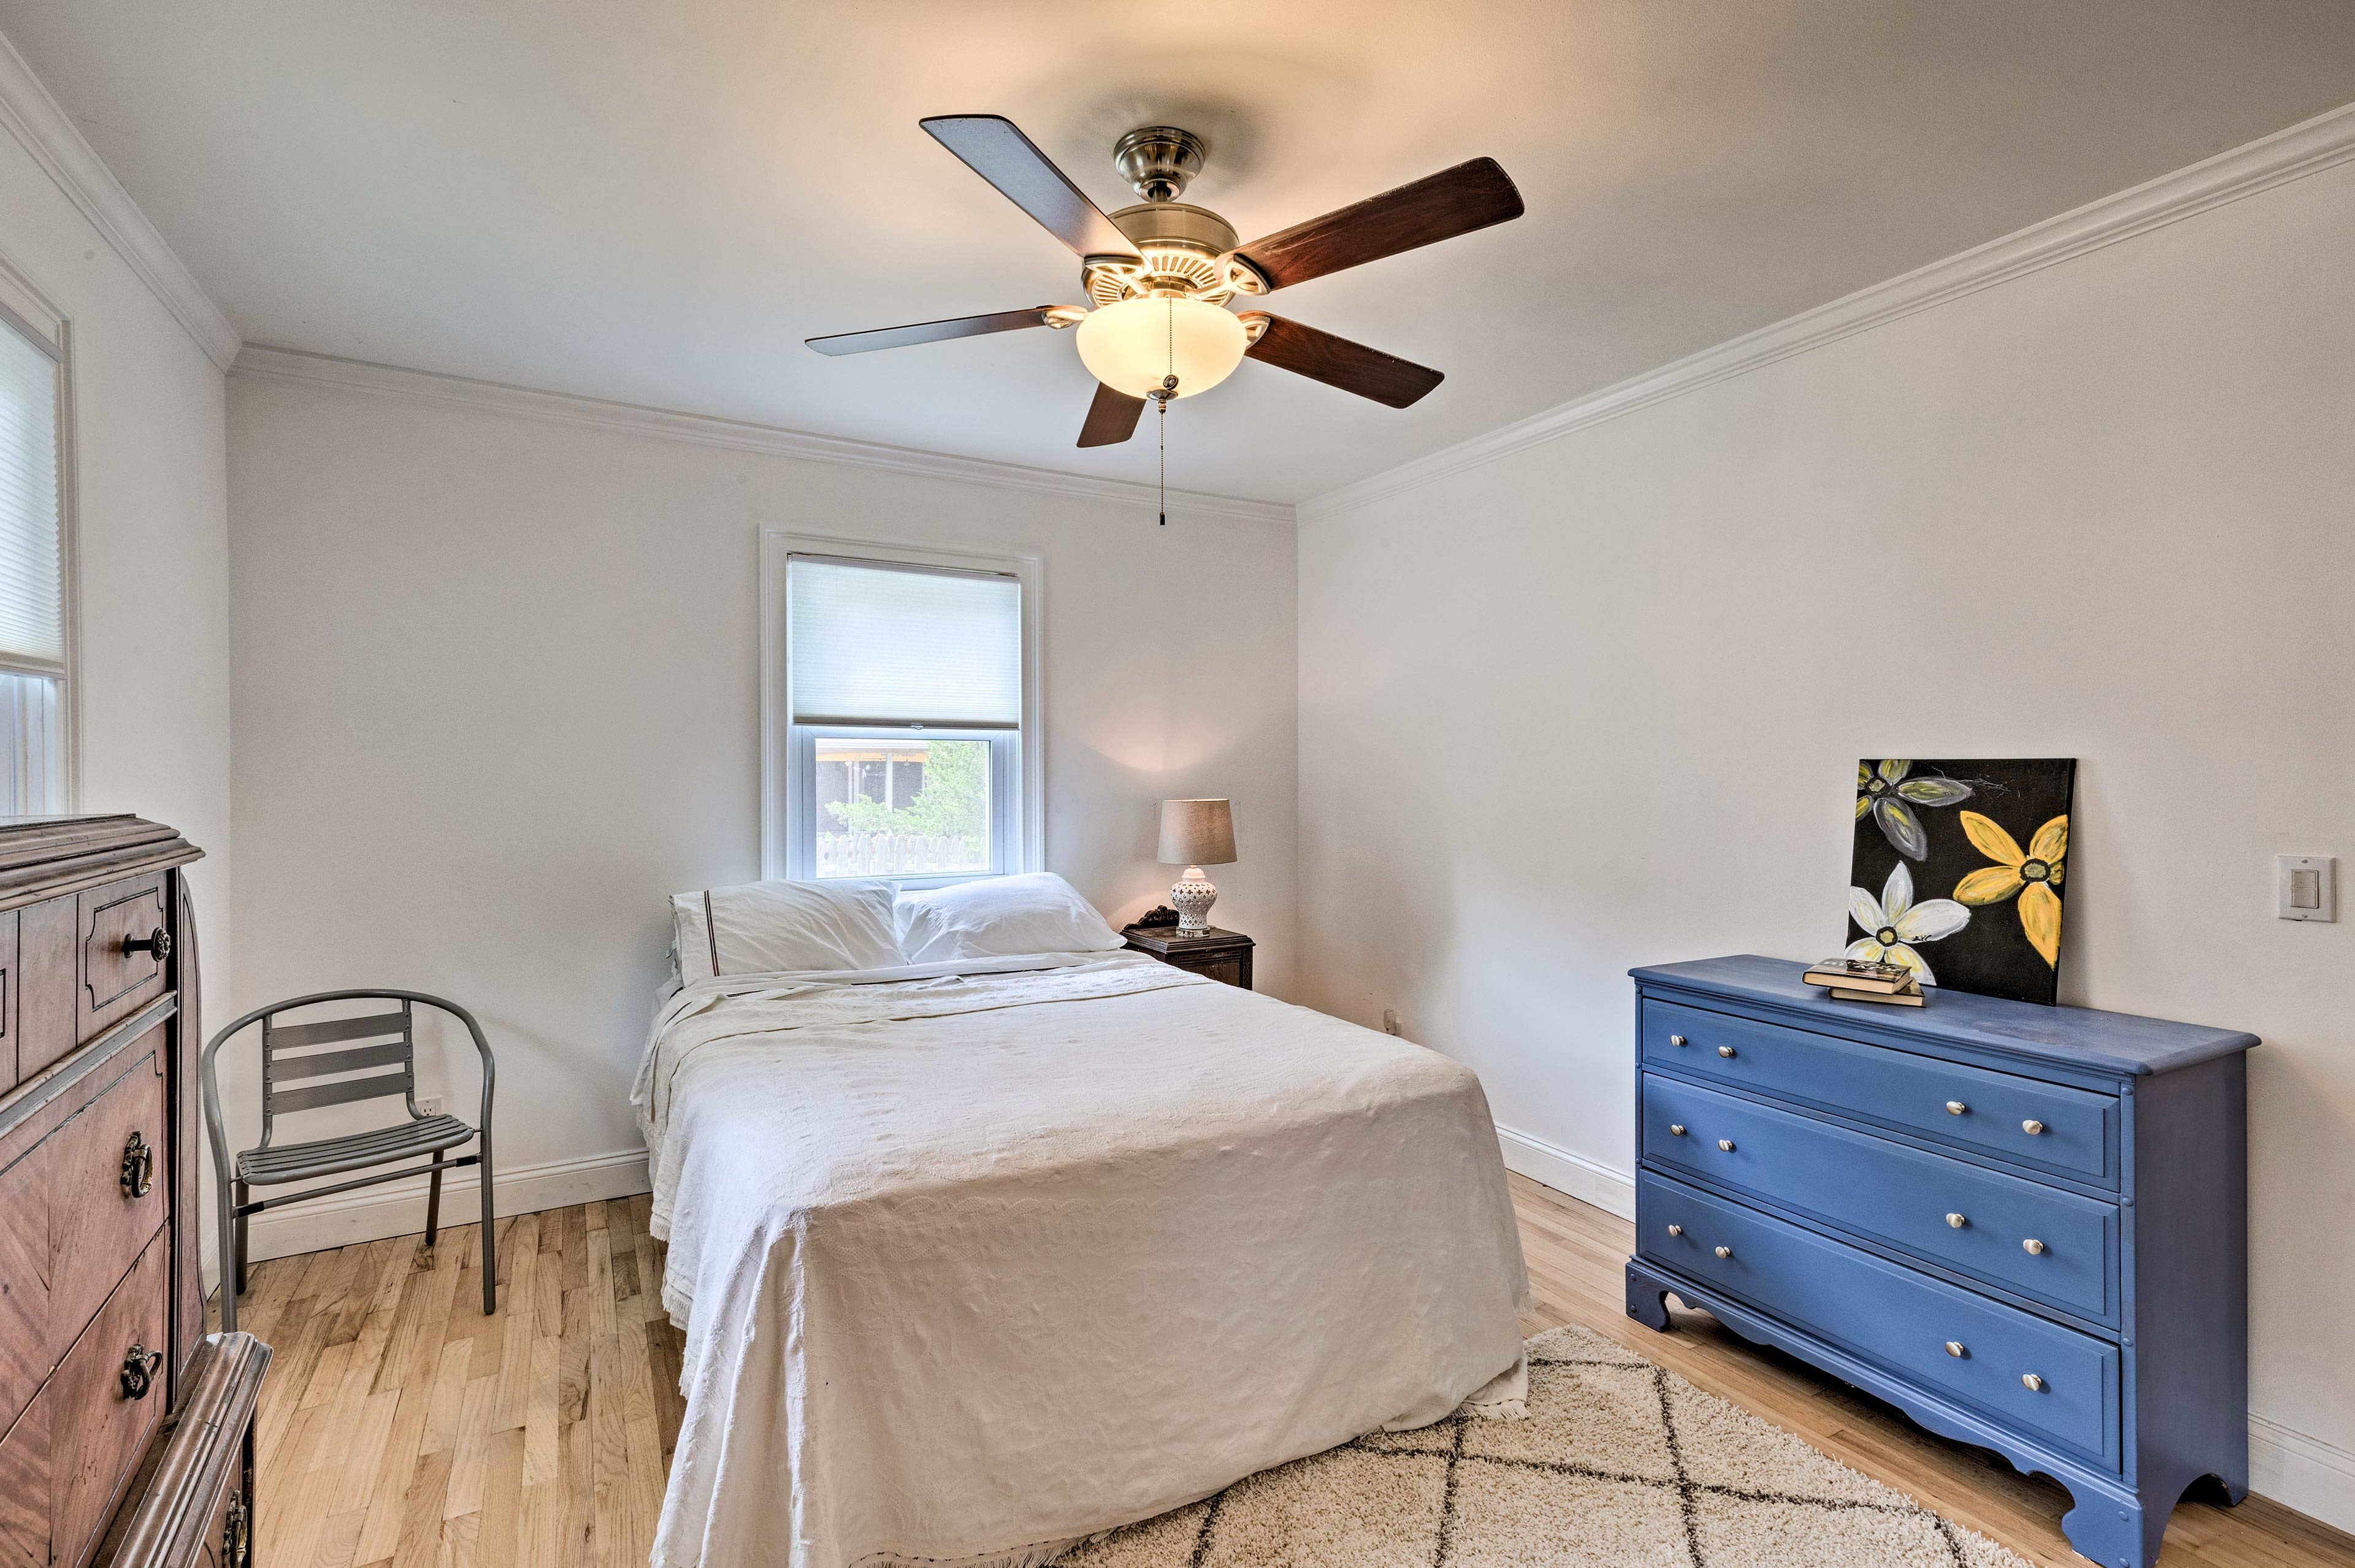 Ceiling fans and air conditioning keep you cool in the warm summer.